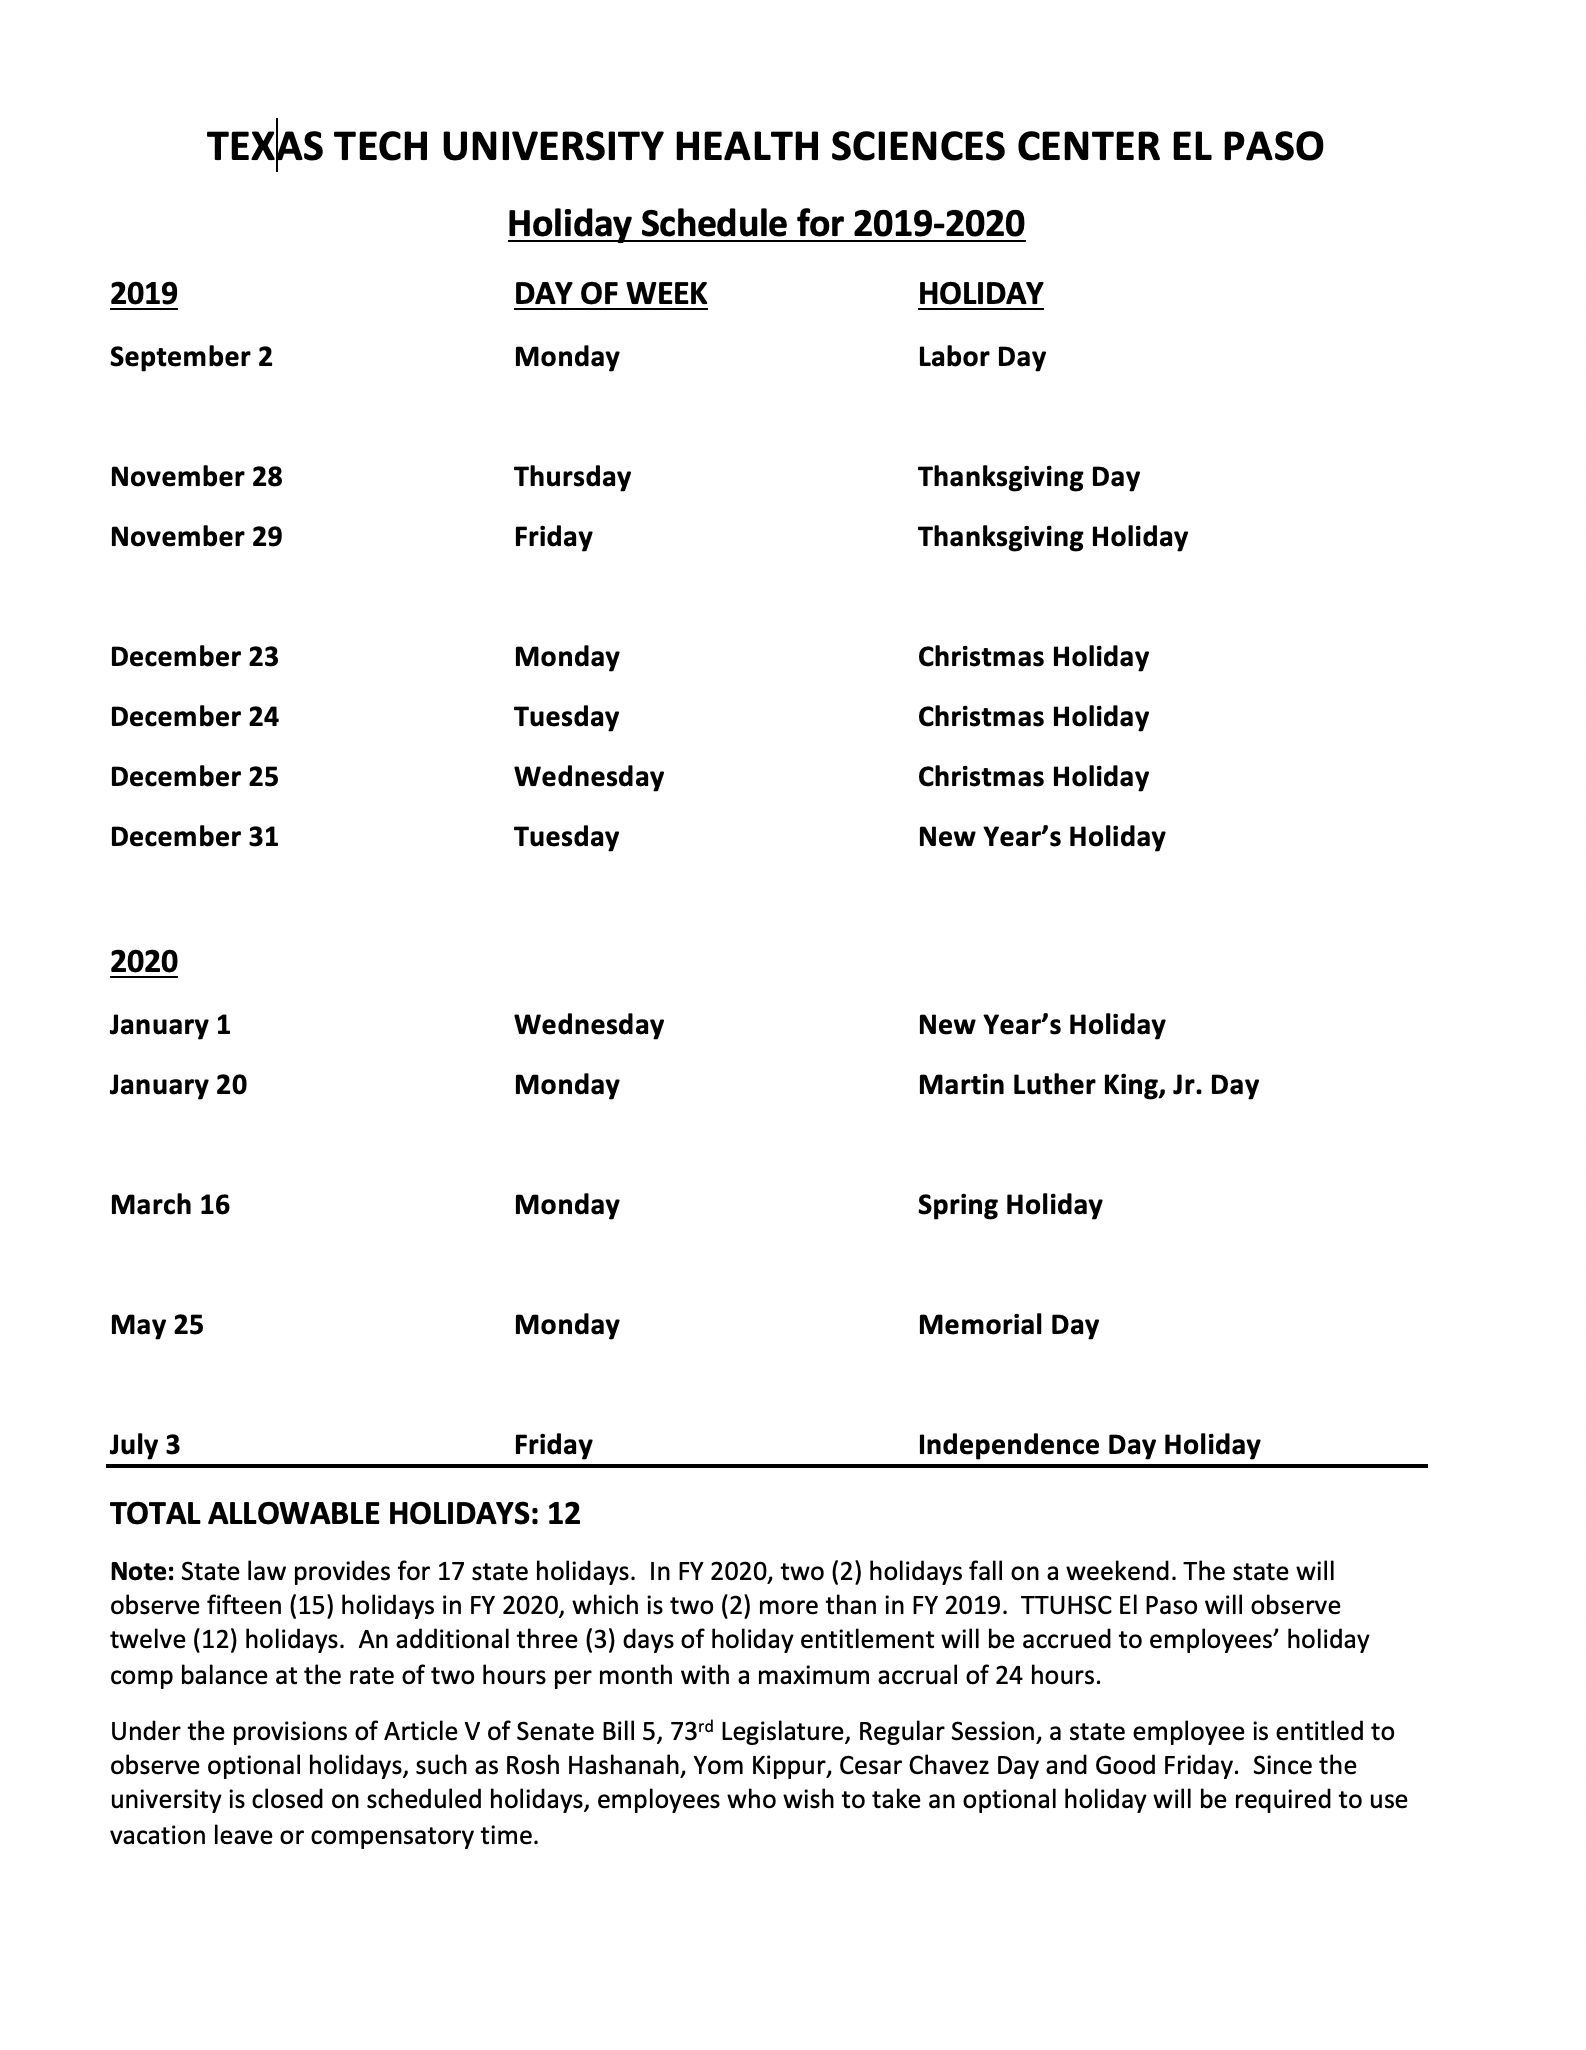 Holiday Schedule for 2019-2020